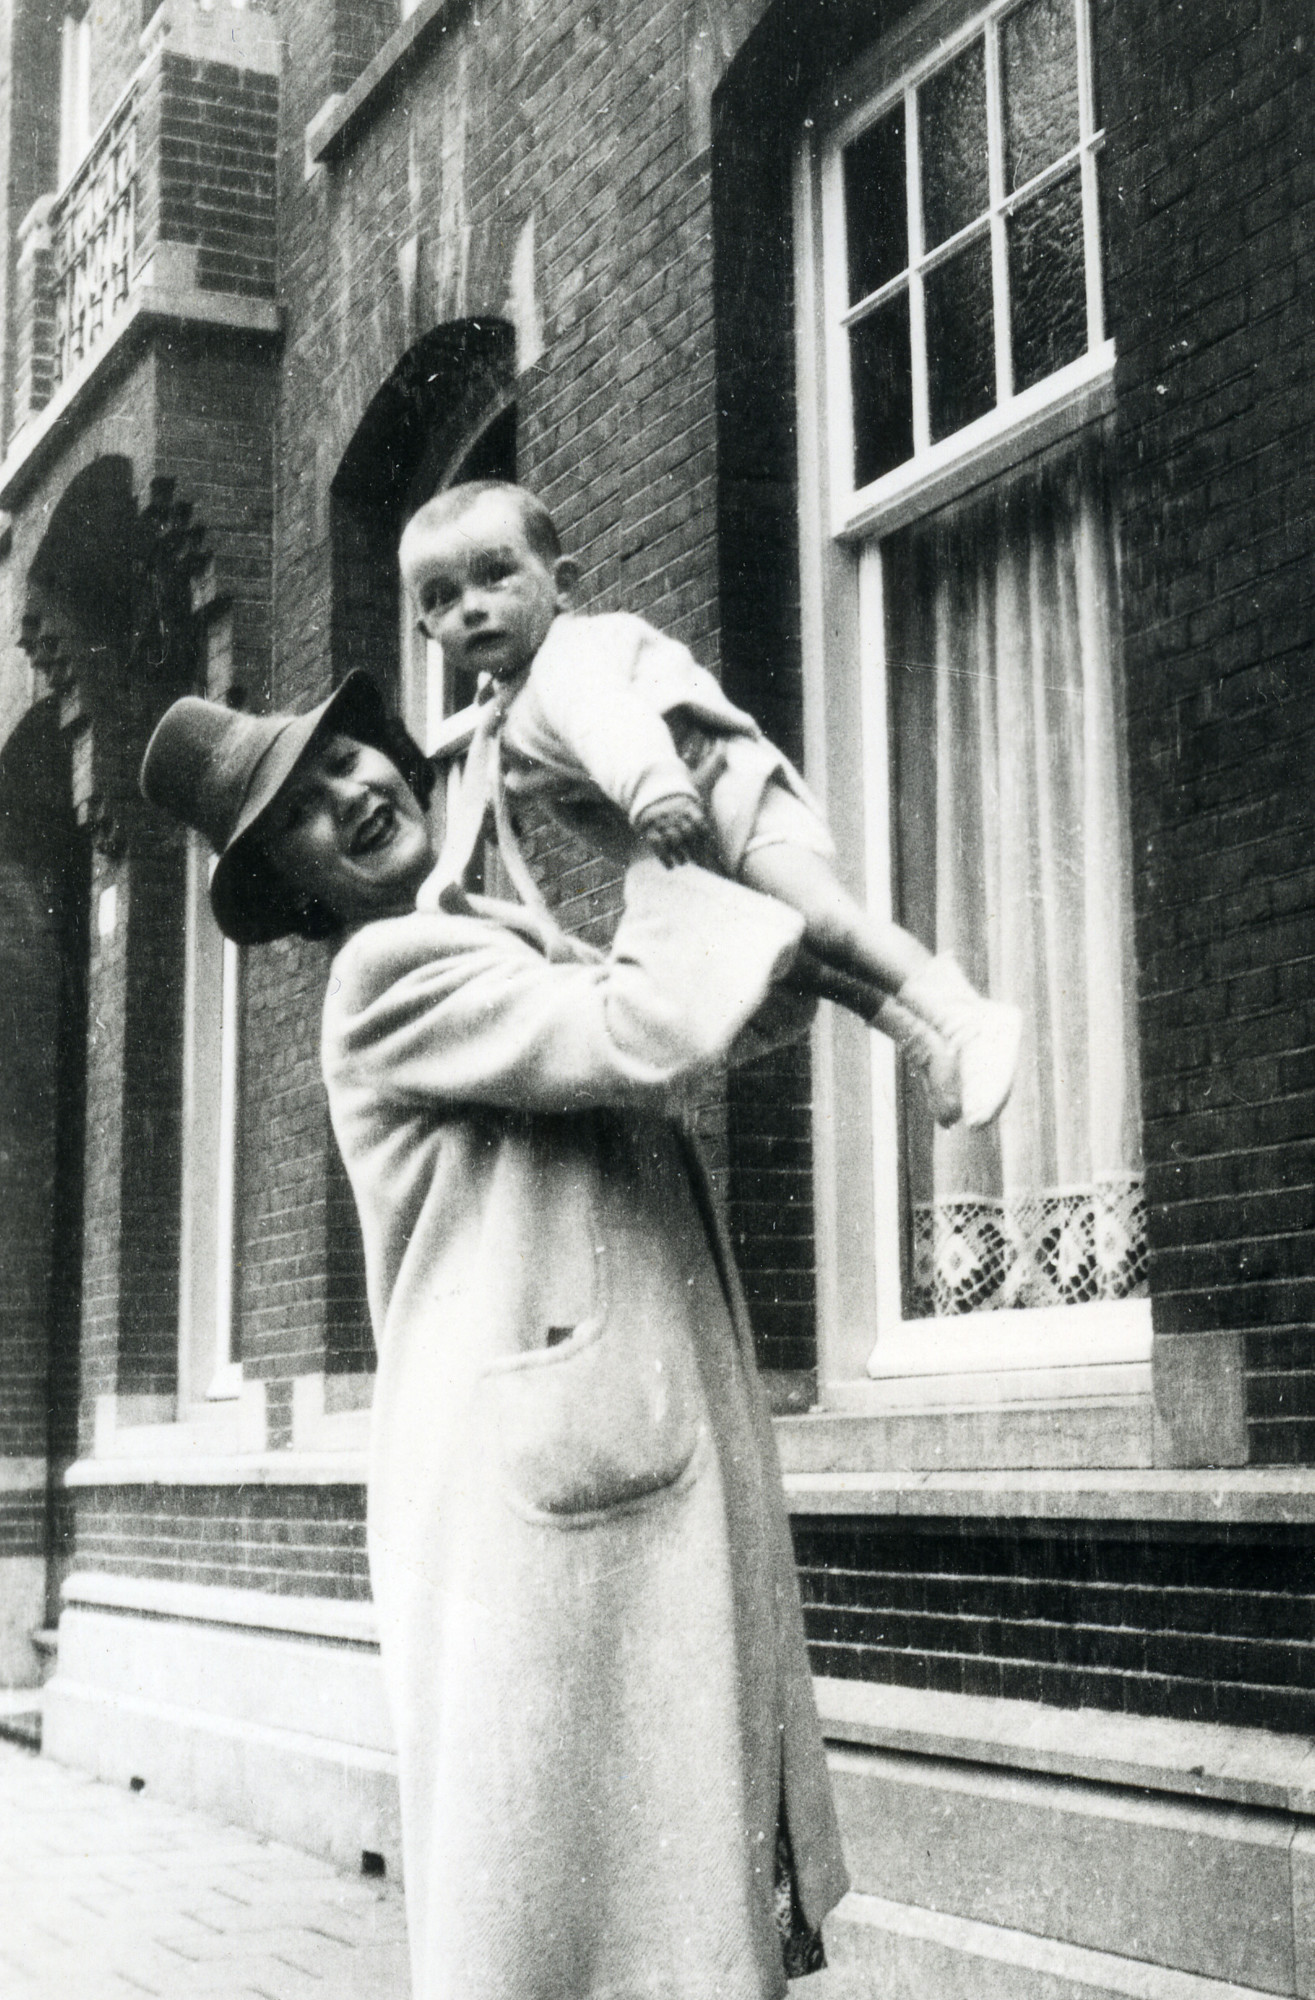 Esther Polak lifts up her baby nephew Louis Polack.  Esther did not survive the Holocaust